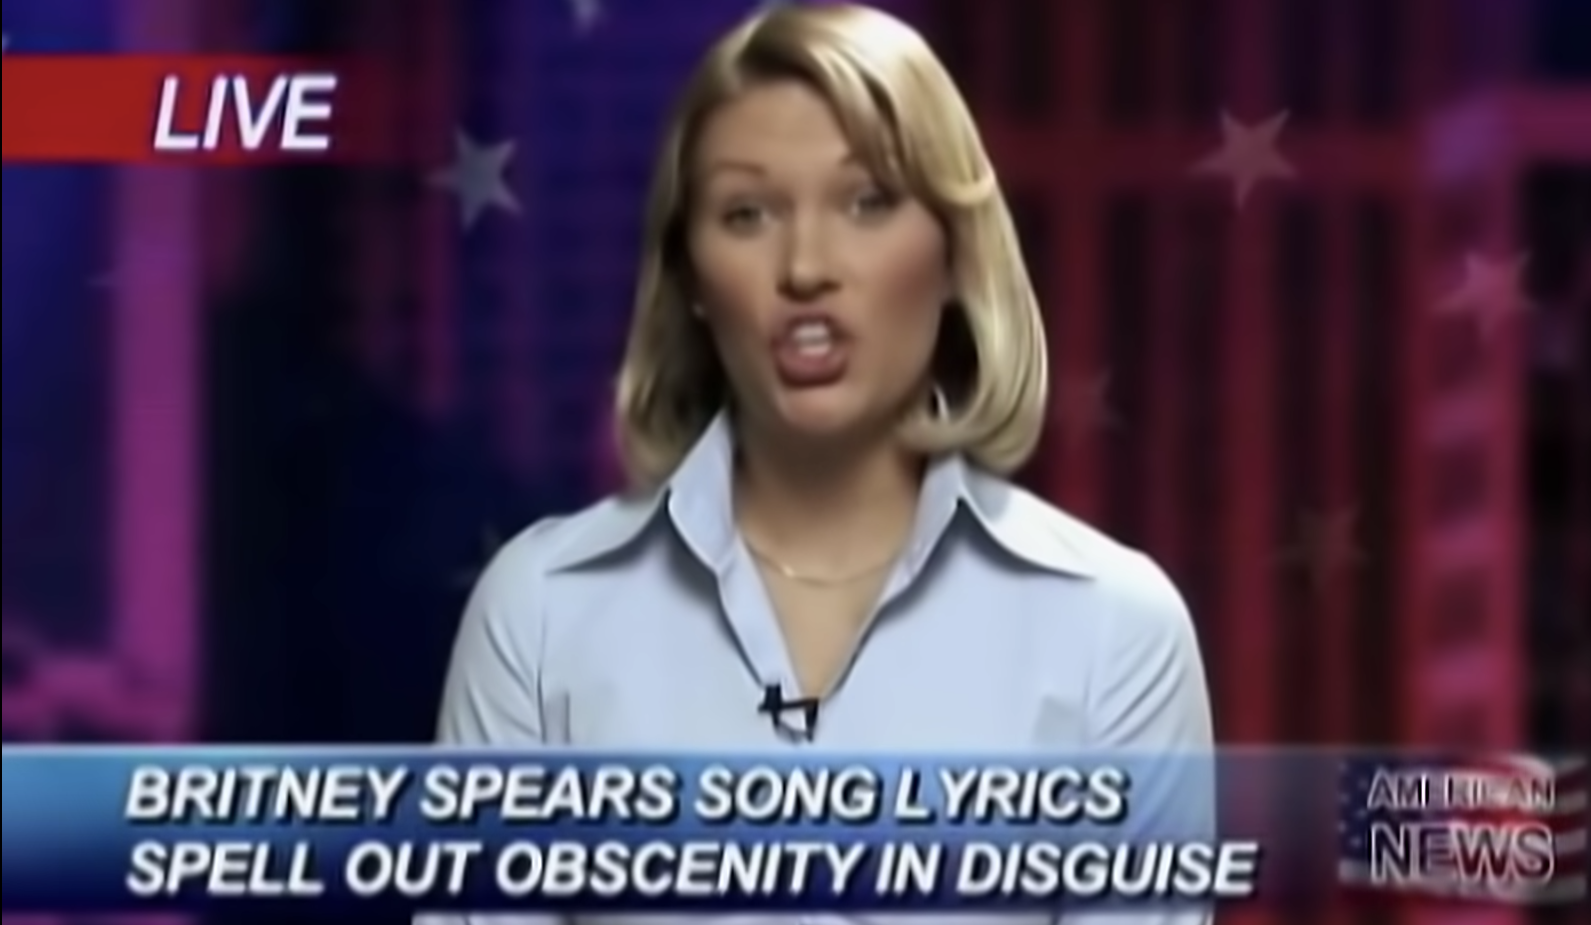 """fake news reporter with the footer """"Britney Spears song lyrics spell out obscenity in disguise"""" in the music video for the song"""